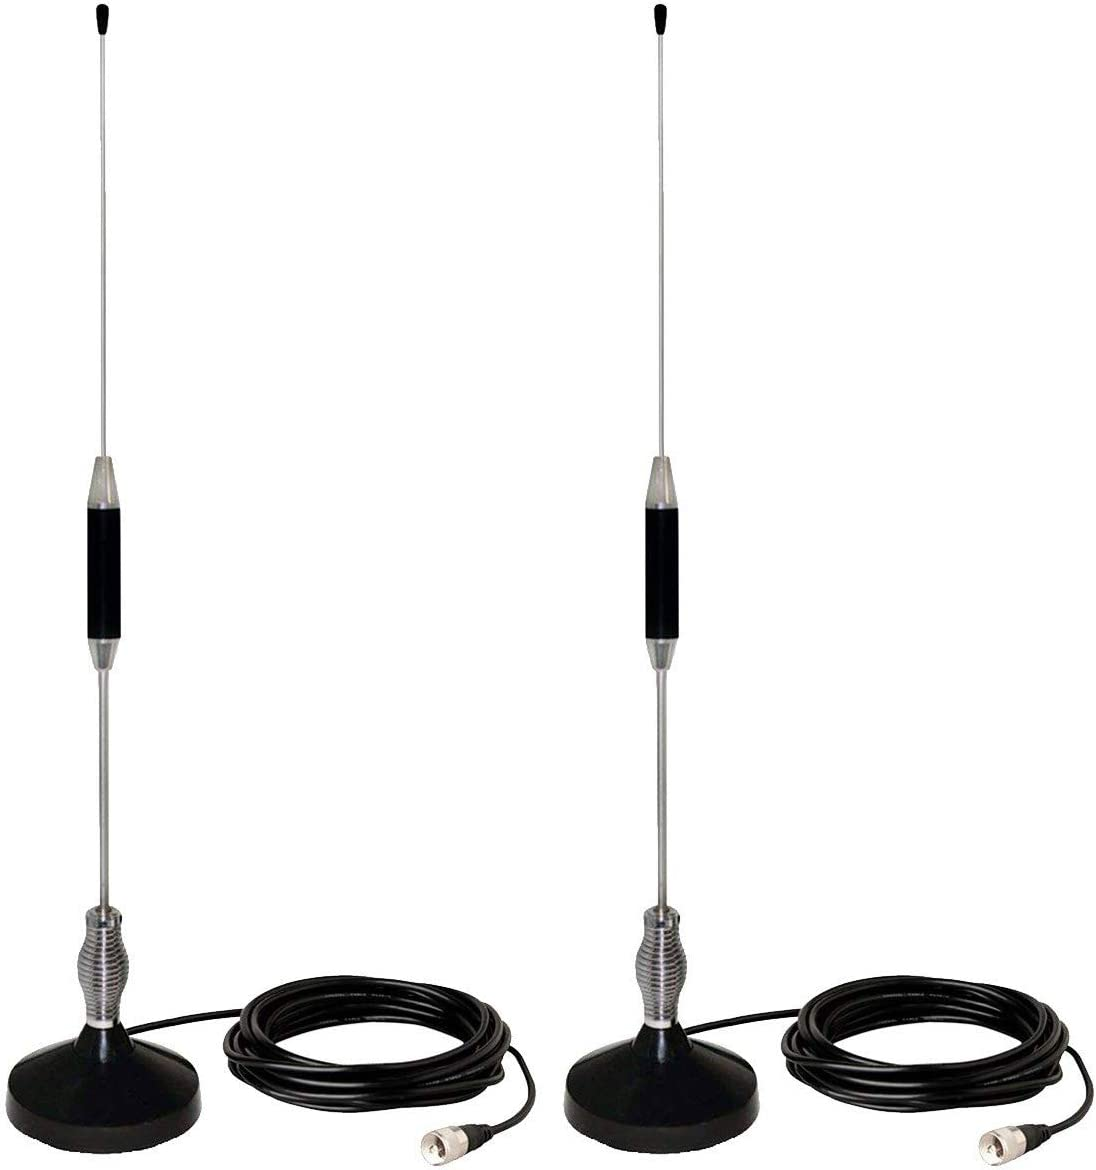 CB Antenna 28 inch for CB Radio 27 Mhz,Portable Indoor/Outdoor Antenna Full Kit with Heavy Duty Magnet Mount Mobile/Car Radio Antenna Compatible with Midland Cobra Uniden Anytone by LUITON(2 Pack)